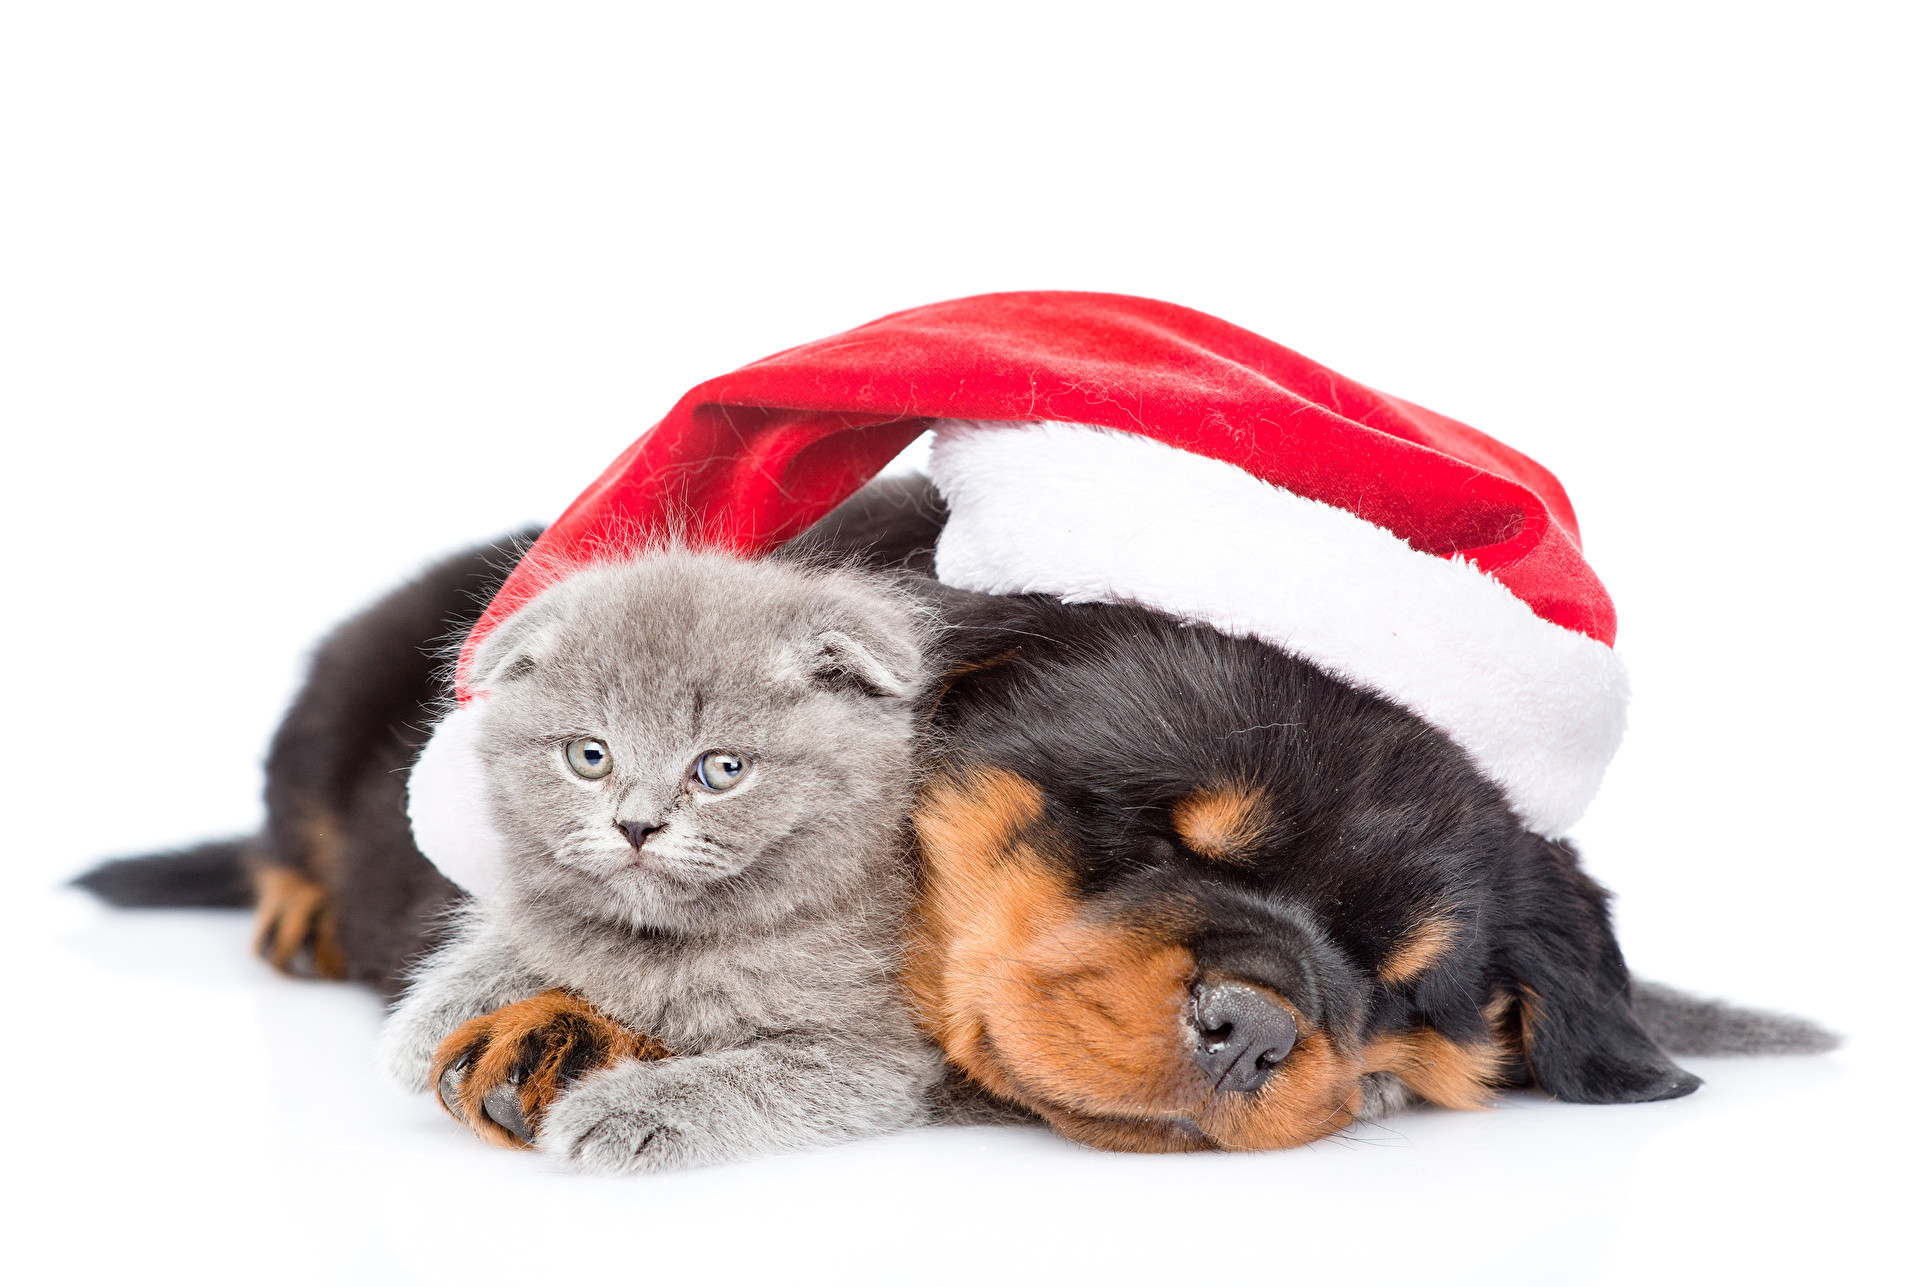 Wallpapers kitty cat Rottweiler Dogs Cats New year Winter hat Animals White  background Kittens Christmas